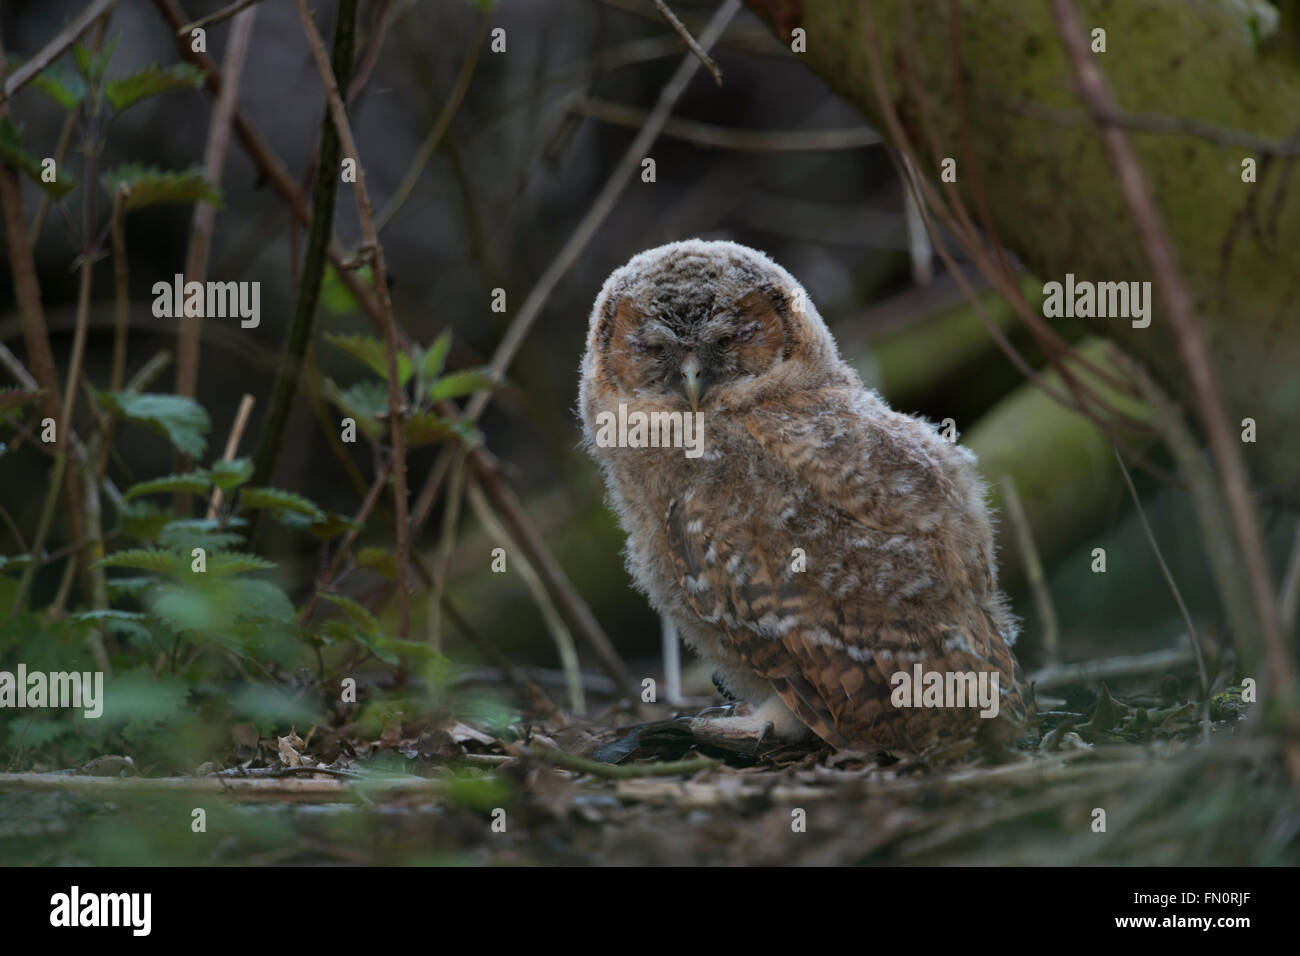 Tawny Owl ( Strix aluco ), young fledgling, hiding in the undergrowth of a forest, sleeping, closed eyes, threatened - Stock Image